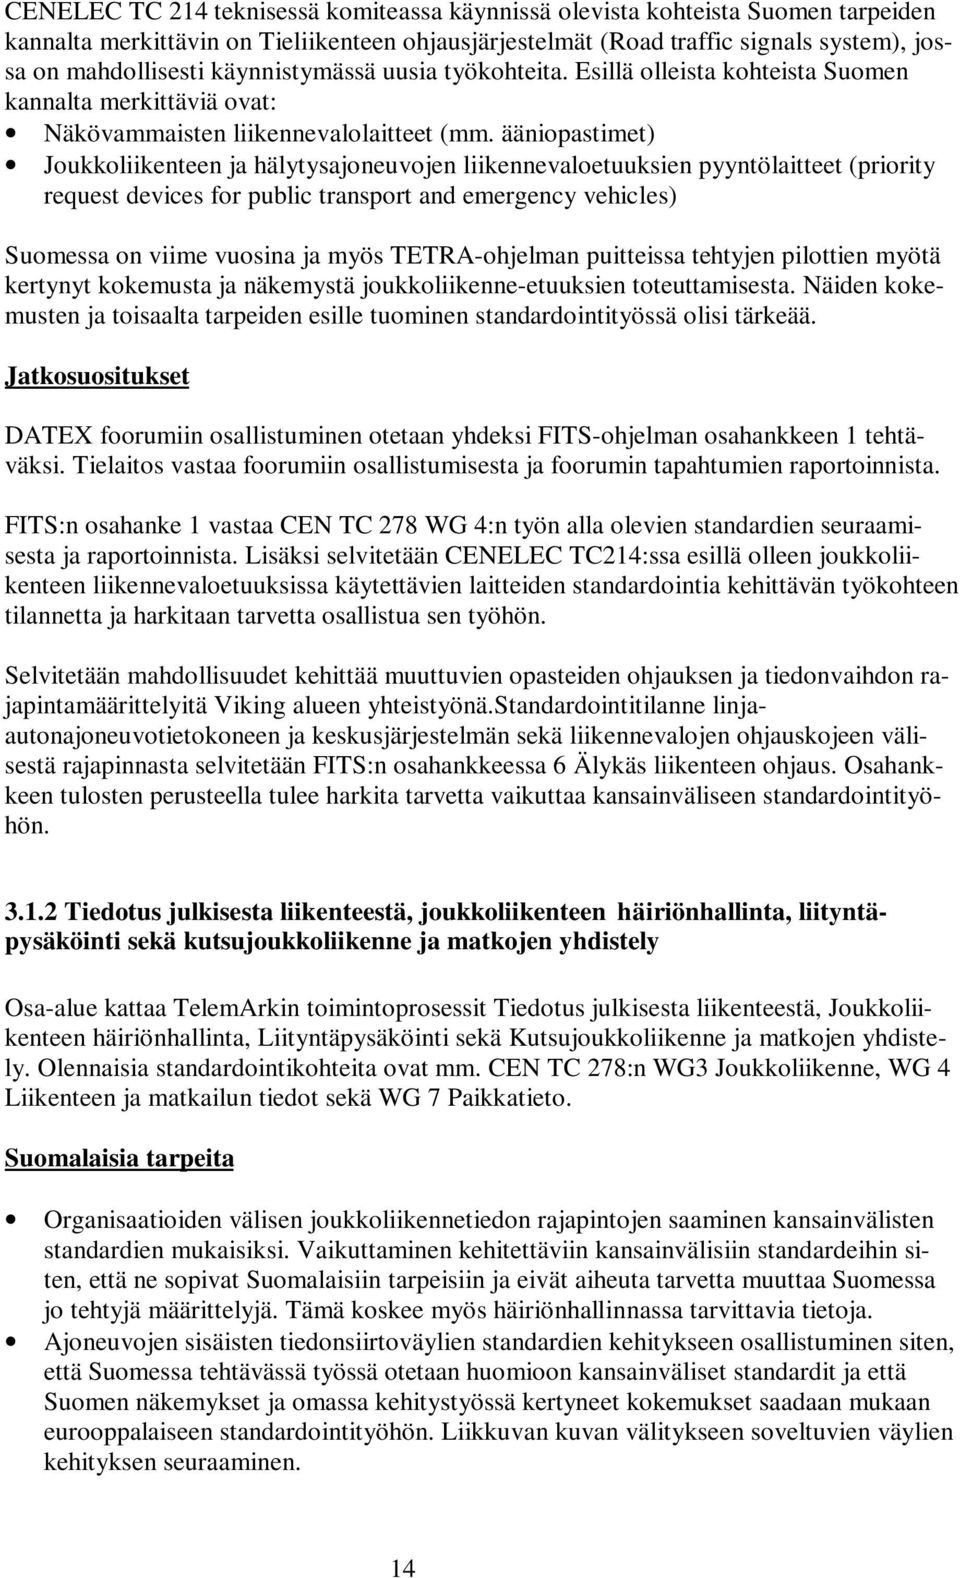 ääniopastimet) Joukkoliikenteen ja hälytysajoneuvojen liikennevaloetuuksien pyyntölaitteet (priority request devices for public transport and emergency vehicles) Suomessa on viime vuosina ja myös